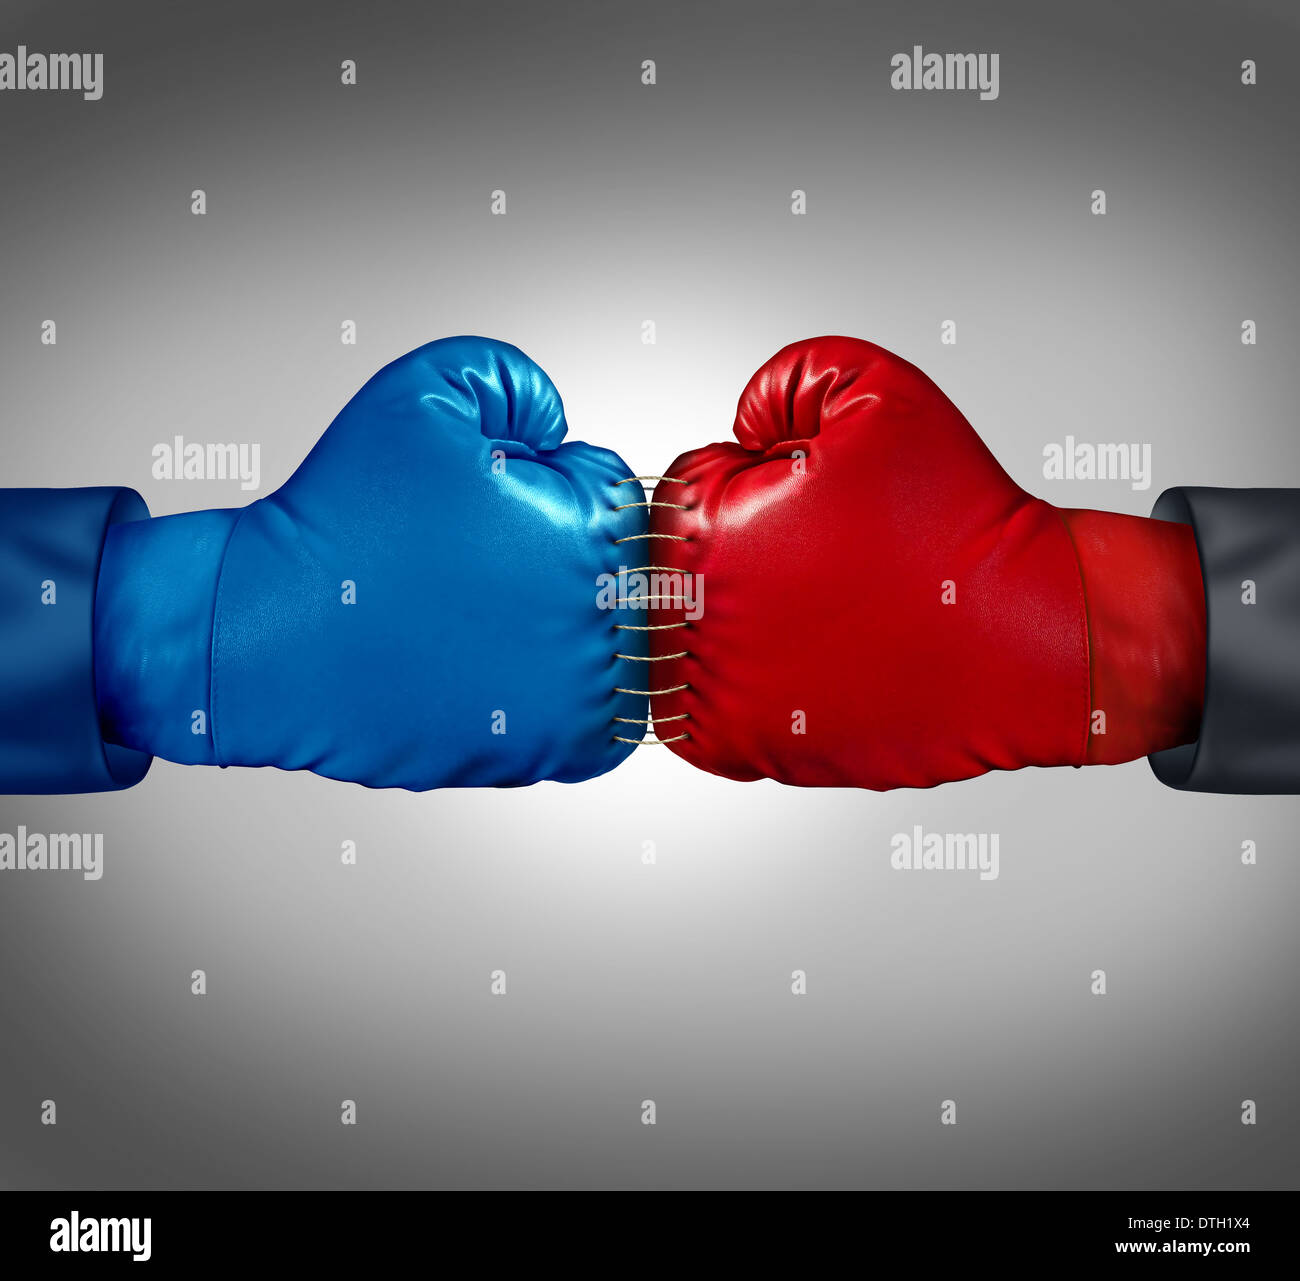 Merge powers business concept as two boxing gloves sewed and stitched together with thread as a metaphor for competitors - Stock Image